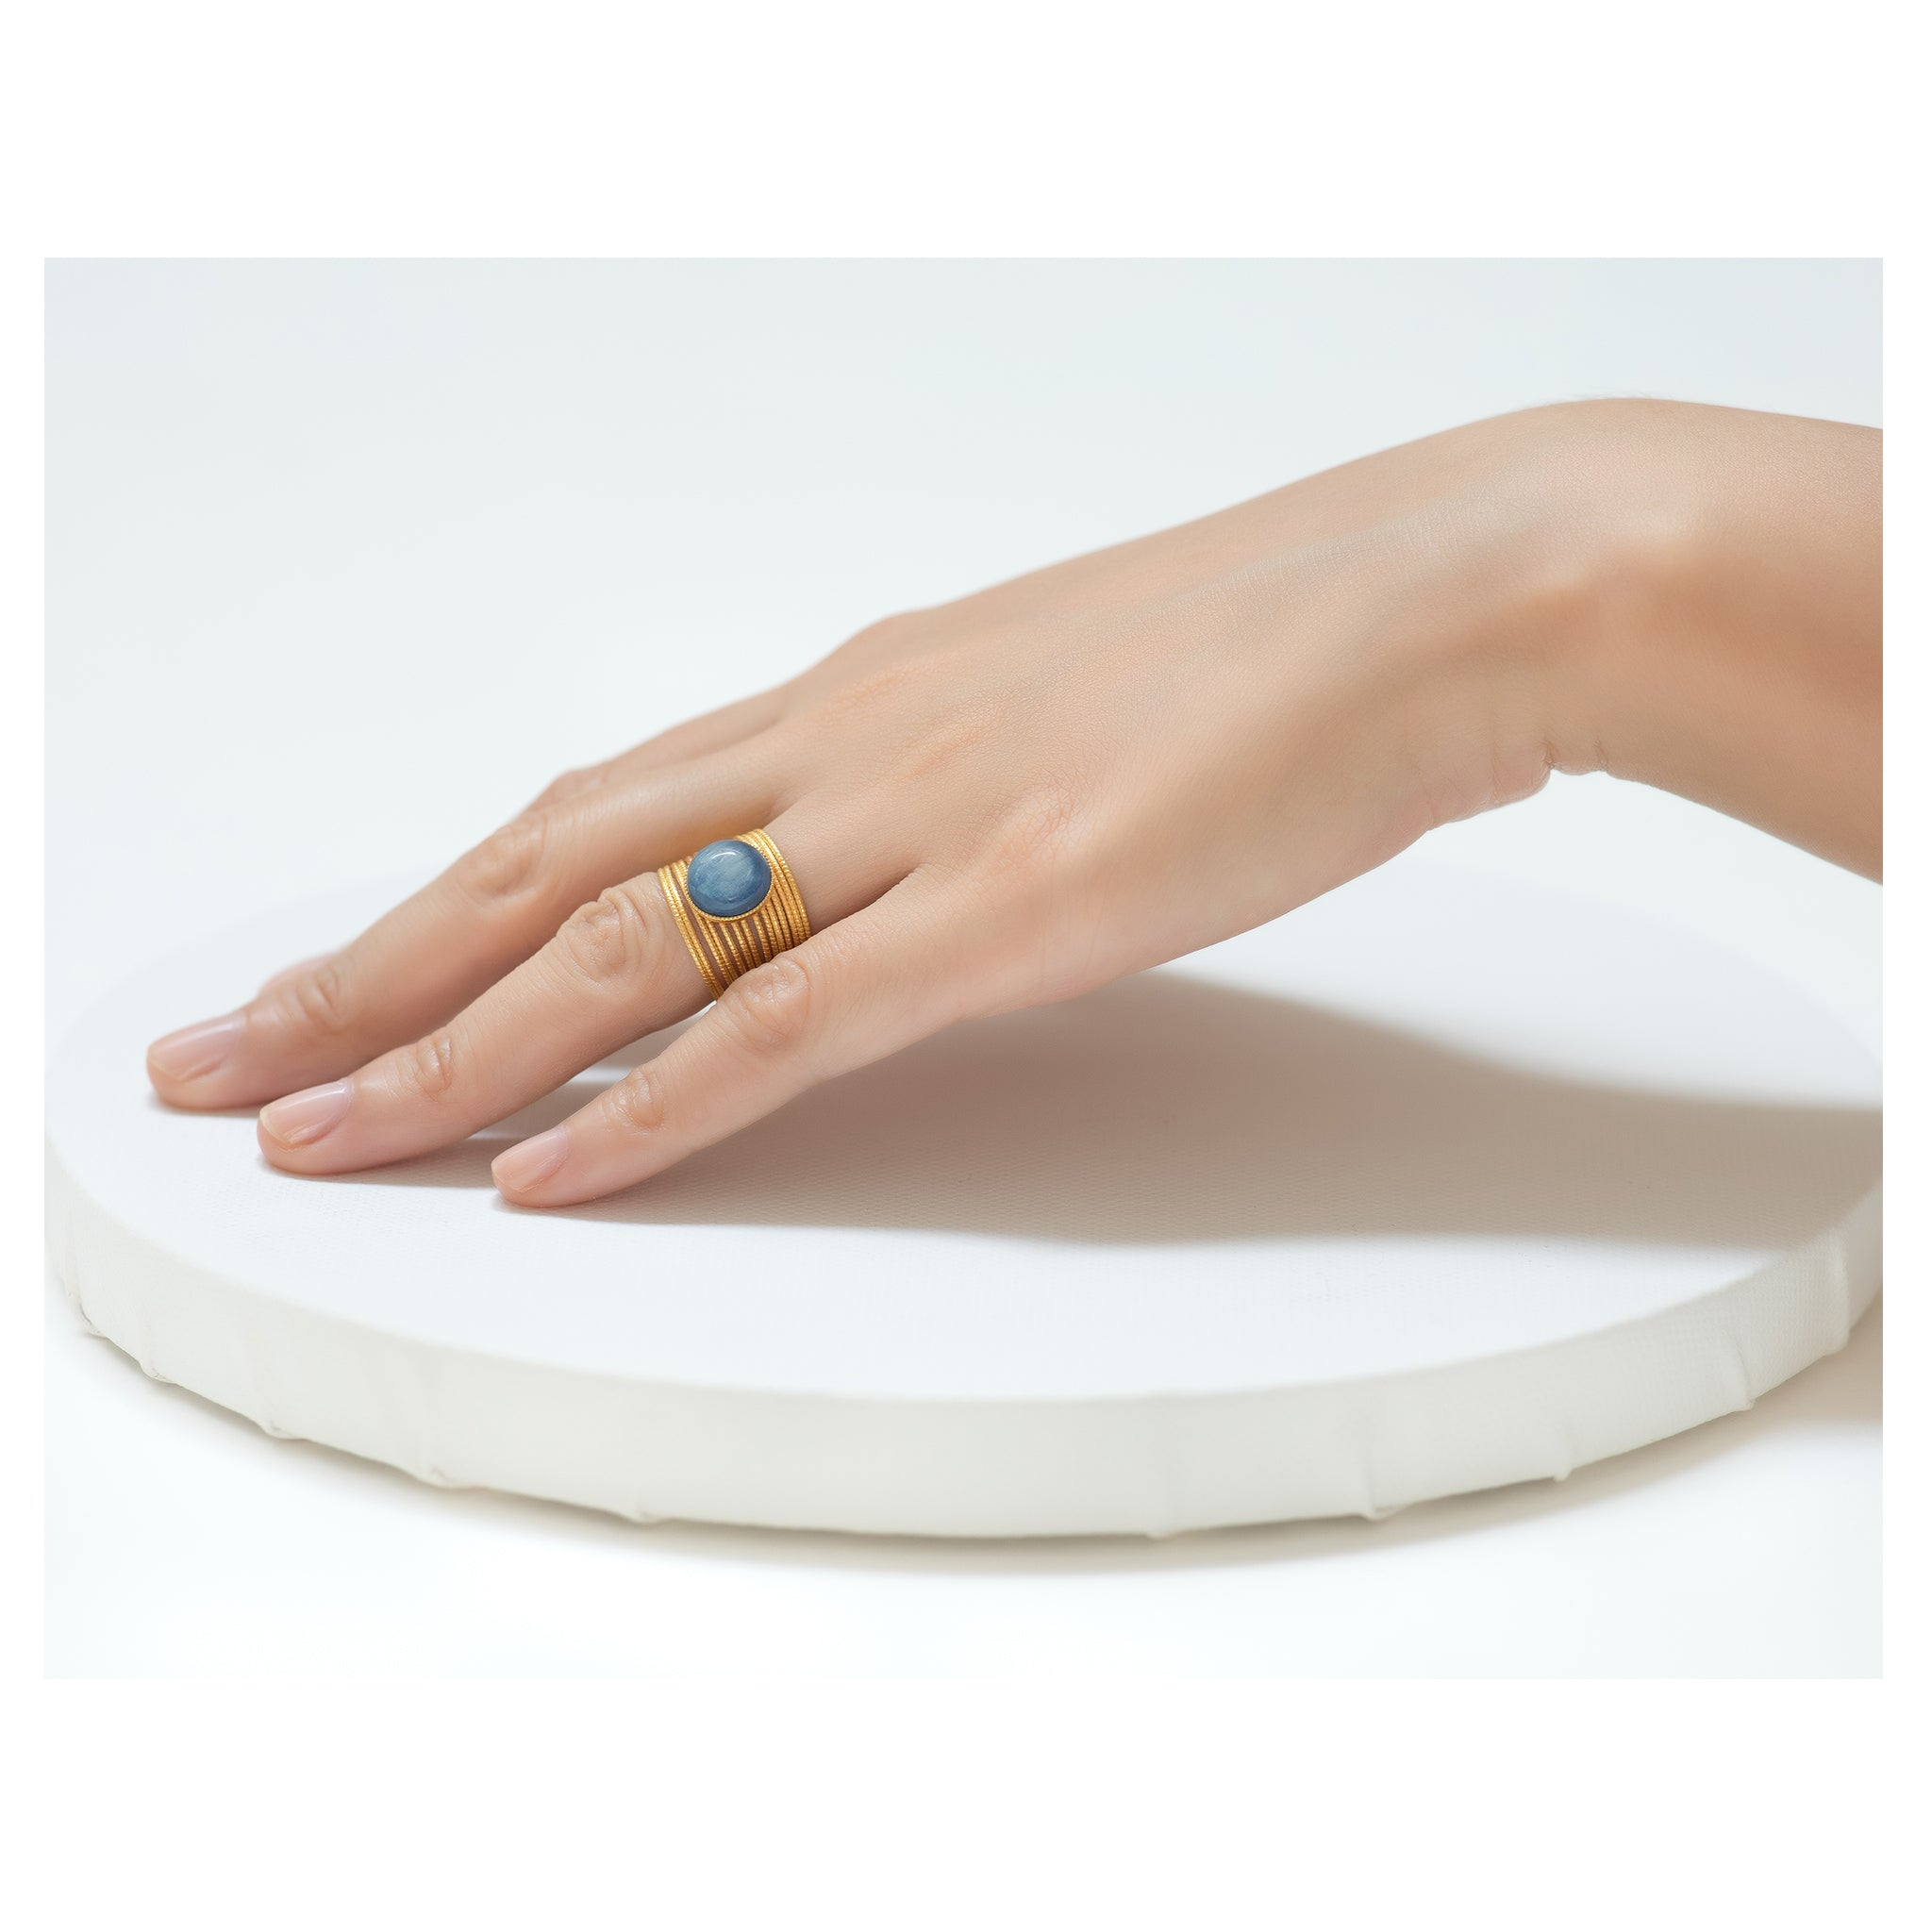 ENEE,  Gold-Plated Ring with a Cyanite Cabochon